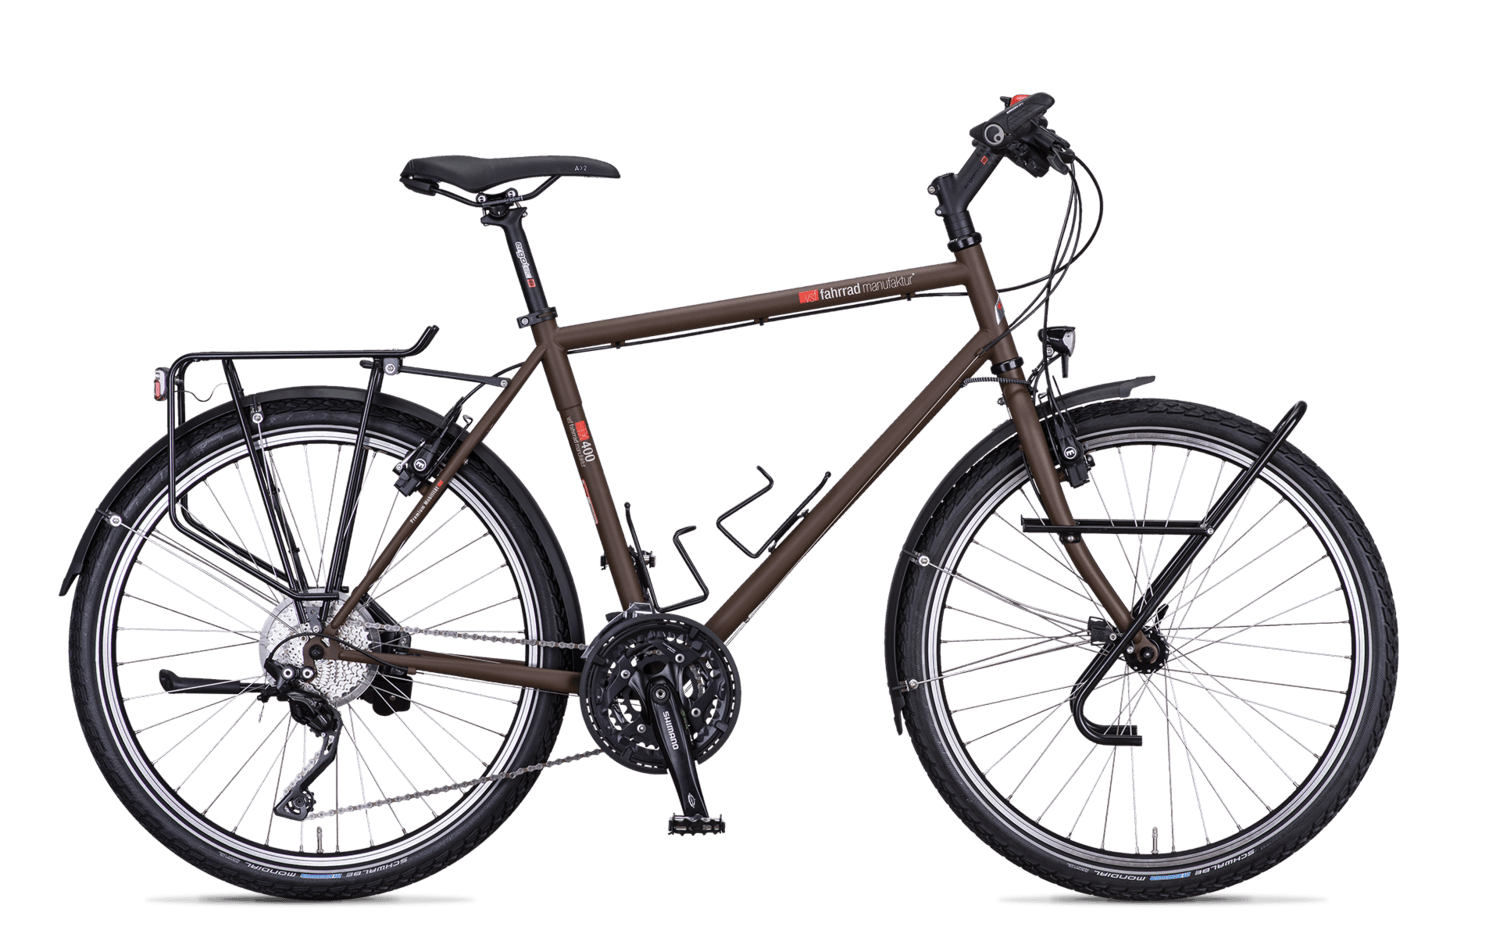 Expedition Tx 400 By Vsf Fahrradmanufaktur